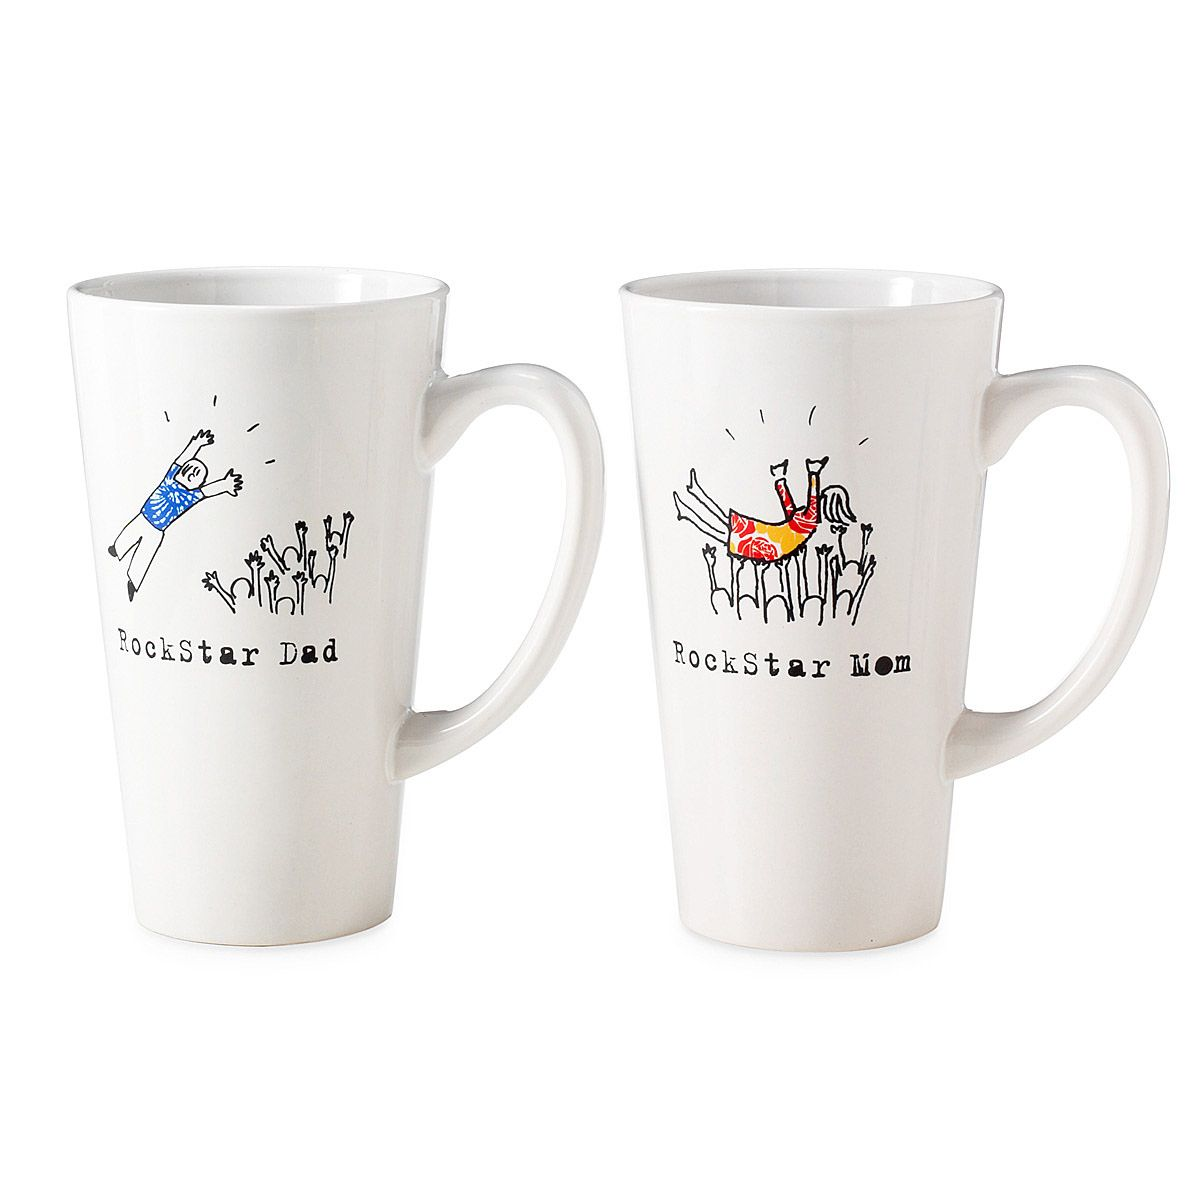 rockstar dad or mom mugs mother s day gift ideas pinterest mom